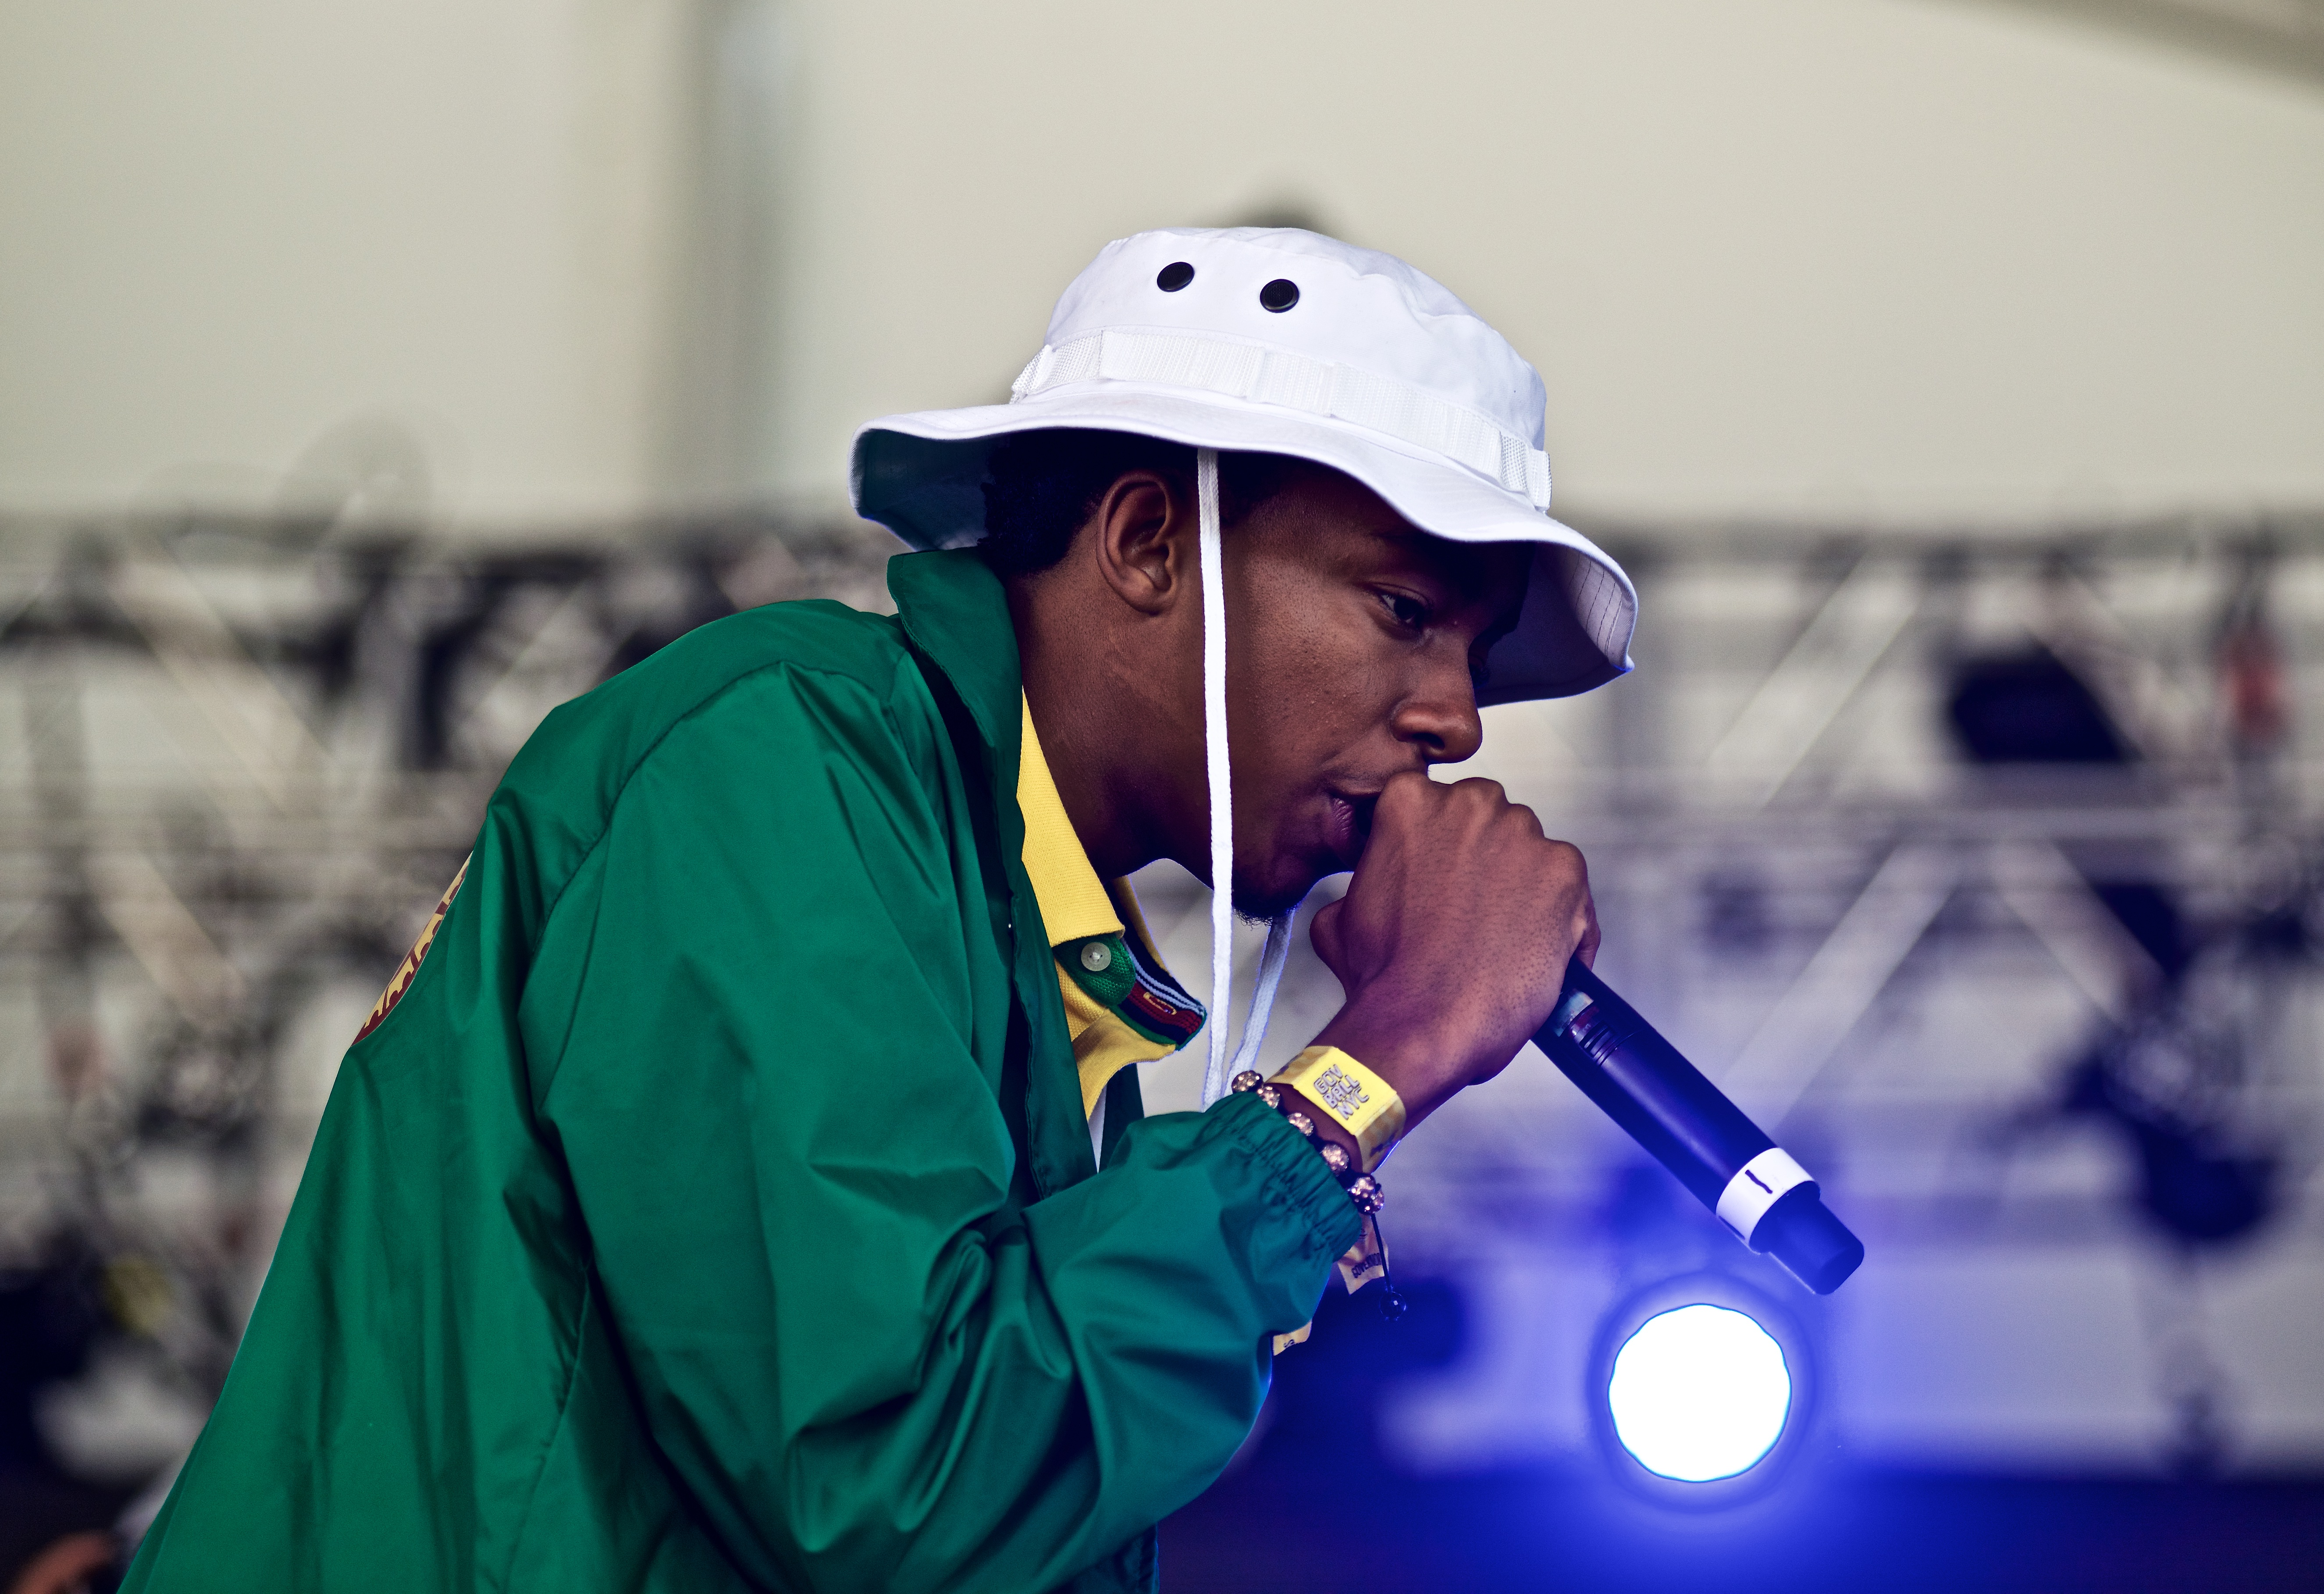 Bishop Nehru performs at The 2015 Governors Ball Music Festival New York - Day 3